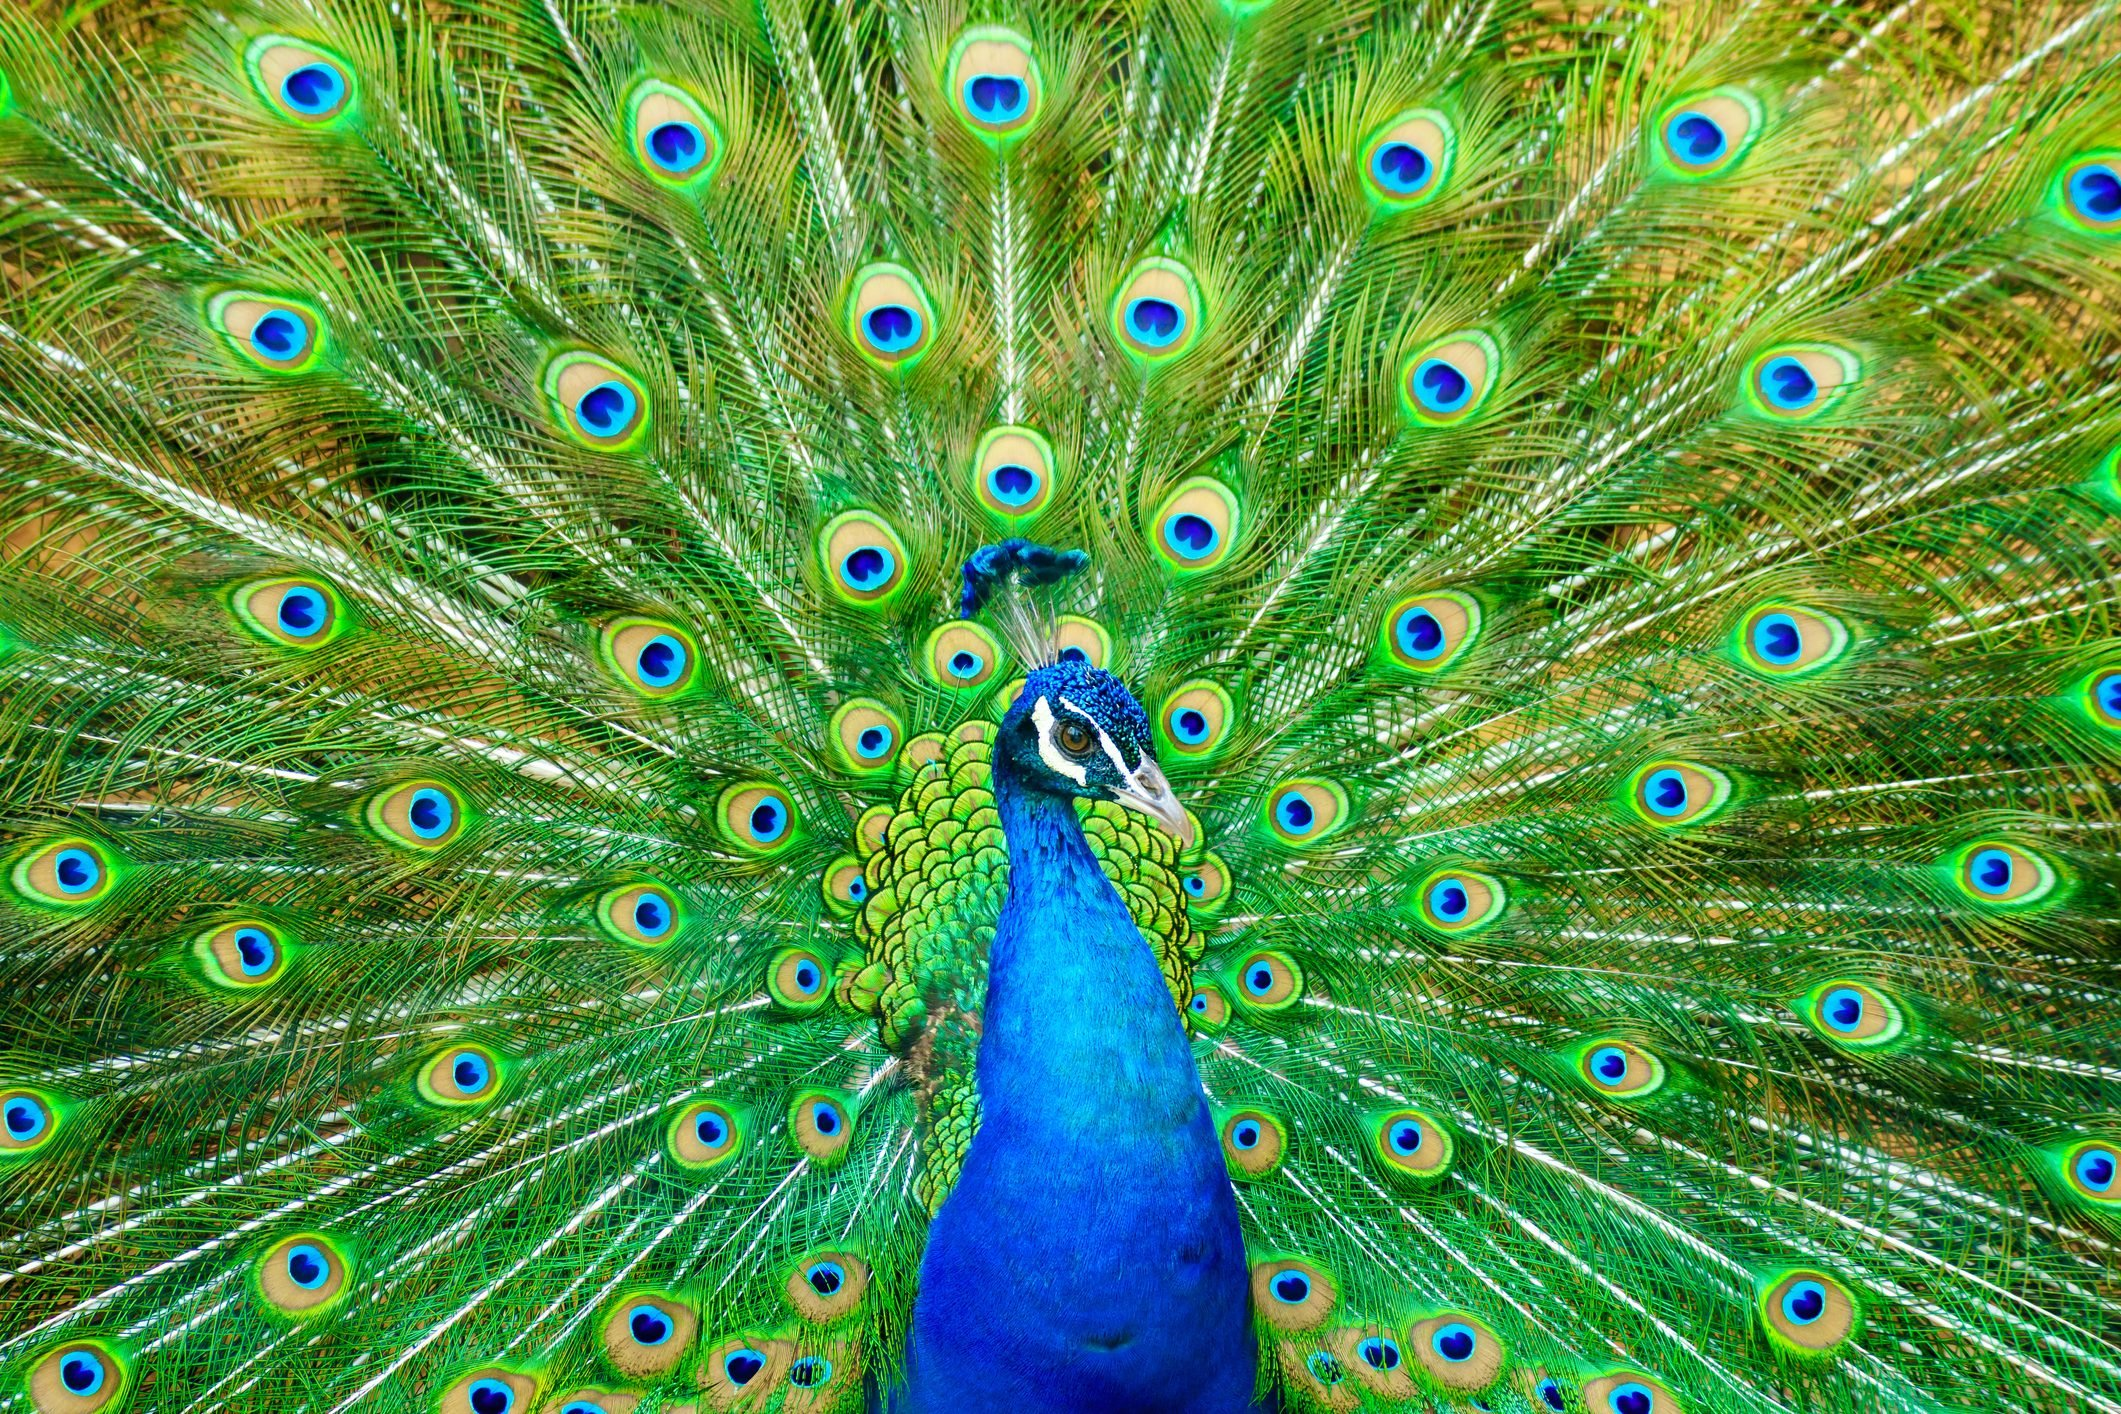 Close-Up Of Peacock With Fanned Out Feathers